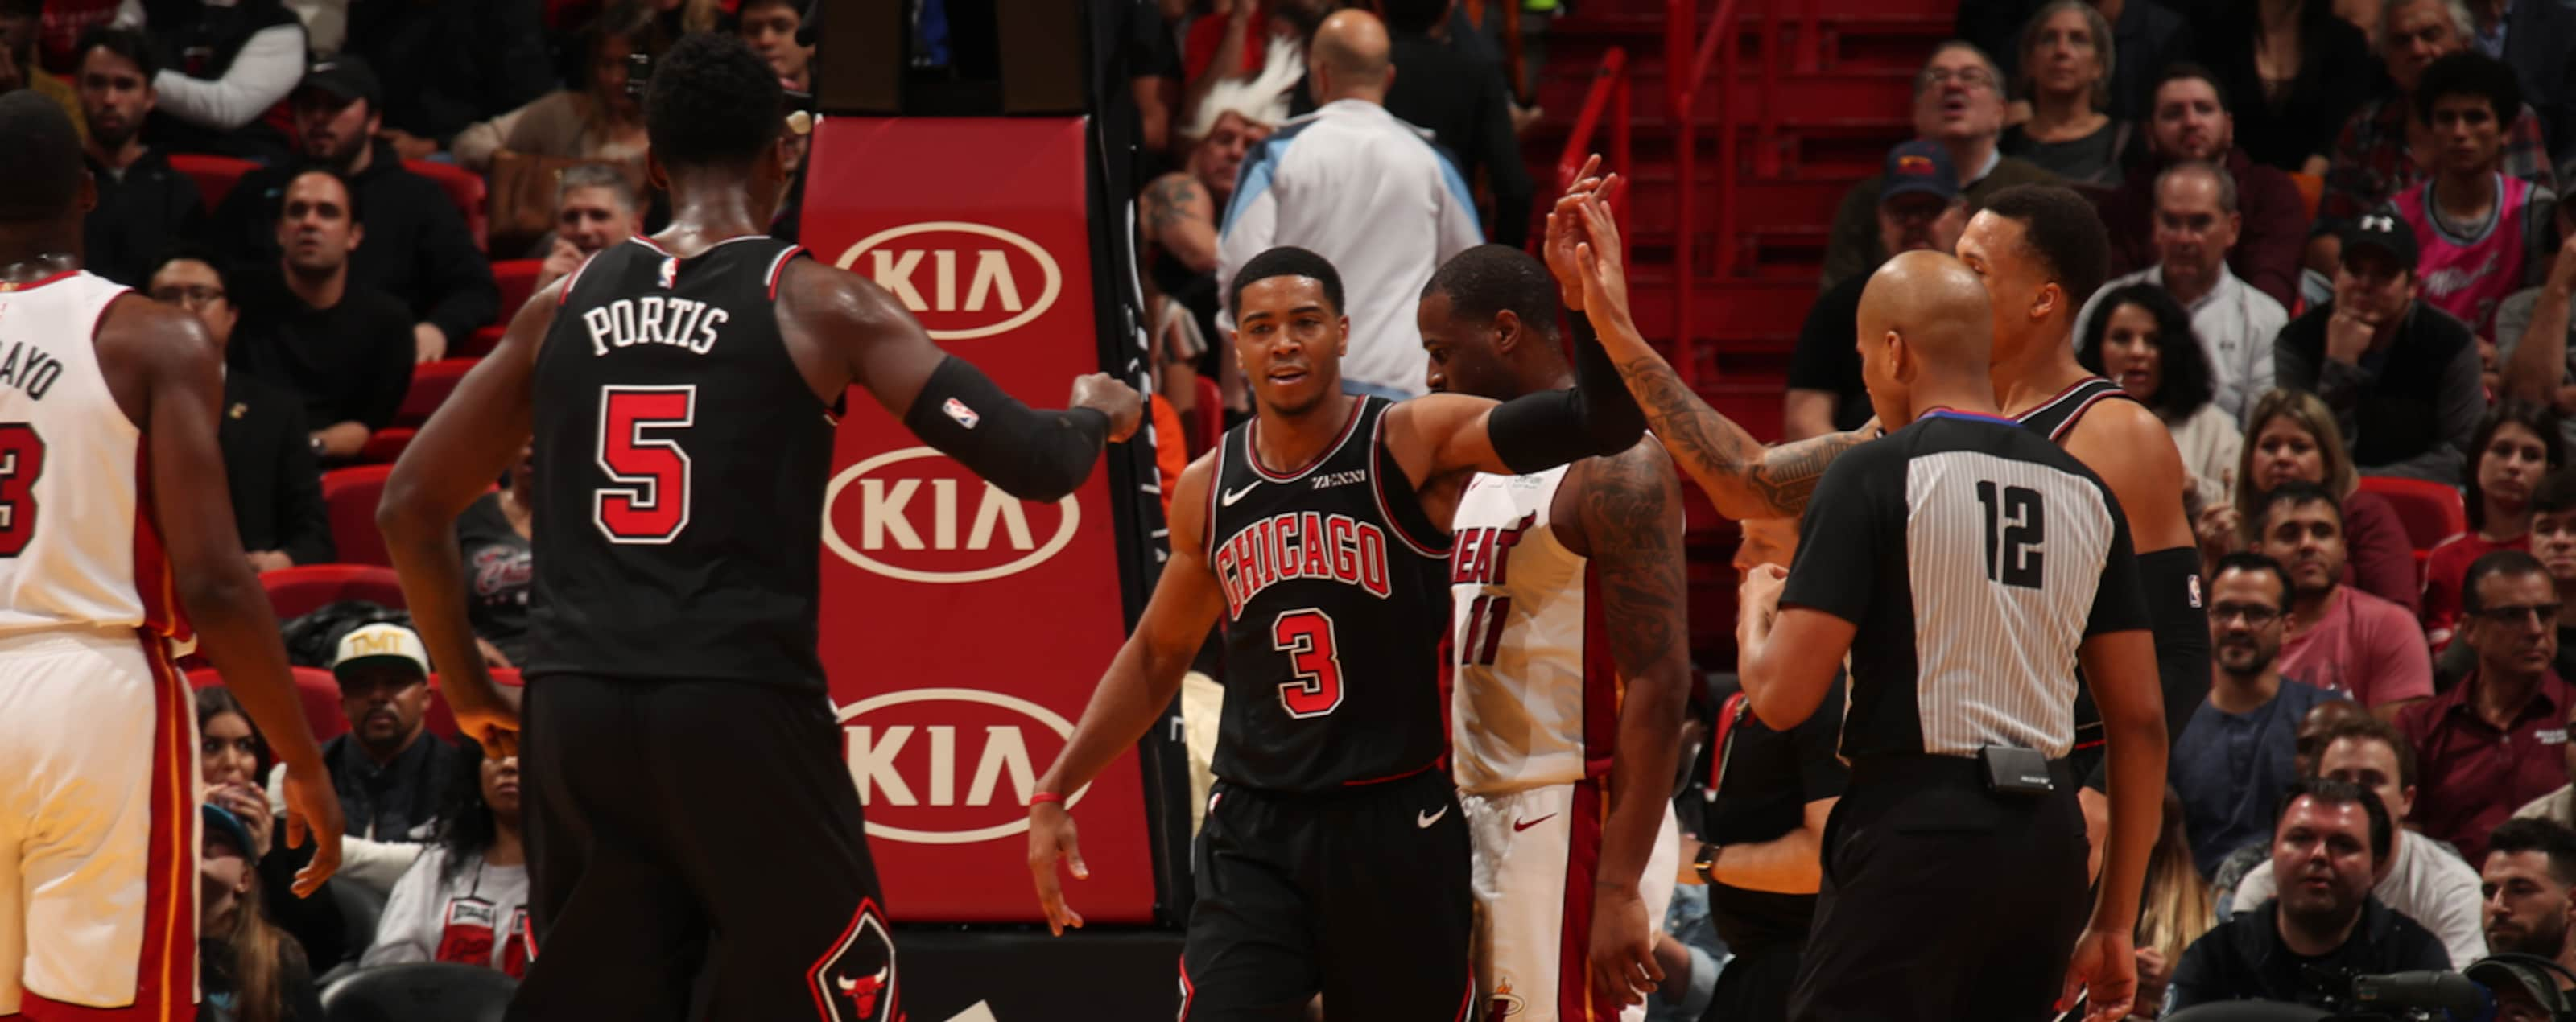 Shaquille Harrison and Bobby Portis celebrating against the Miami Heat